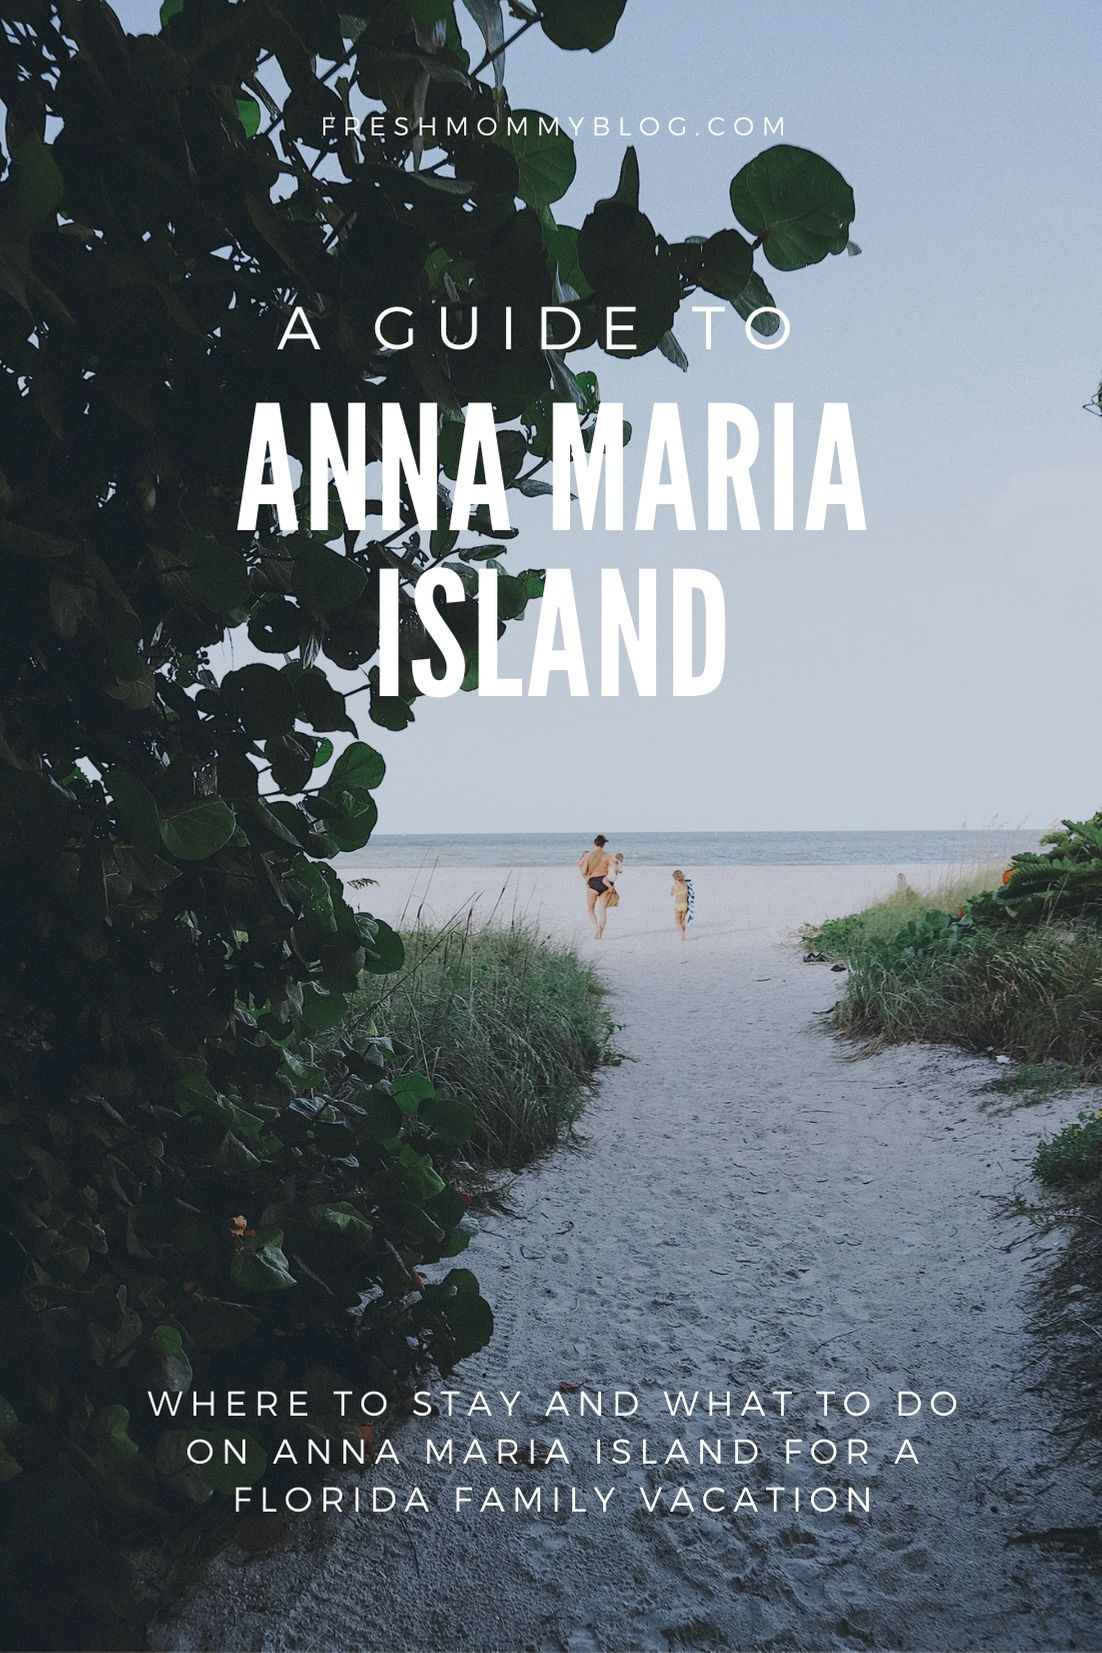 Florida Vacations Worth Staying for: Anna Maria Island Staycation. Where to stay and what to do on Anna Maria Island, Florida for a Florida family vacation by travel and lifestyle blogger Tabitha Blue of Fresh Mommy Blog.